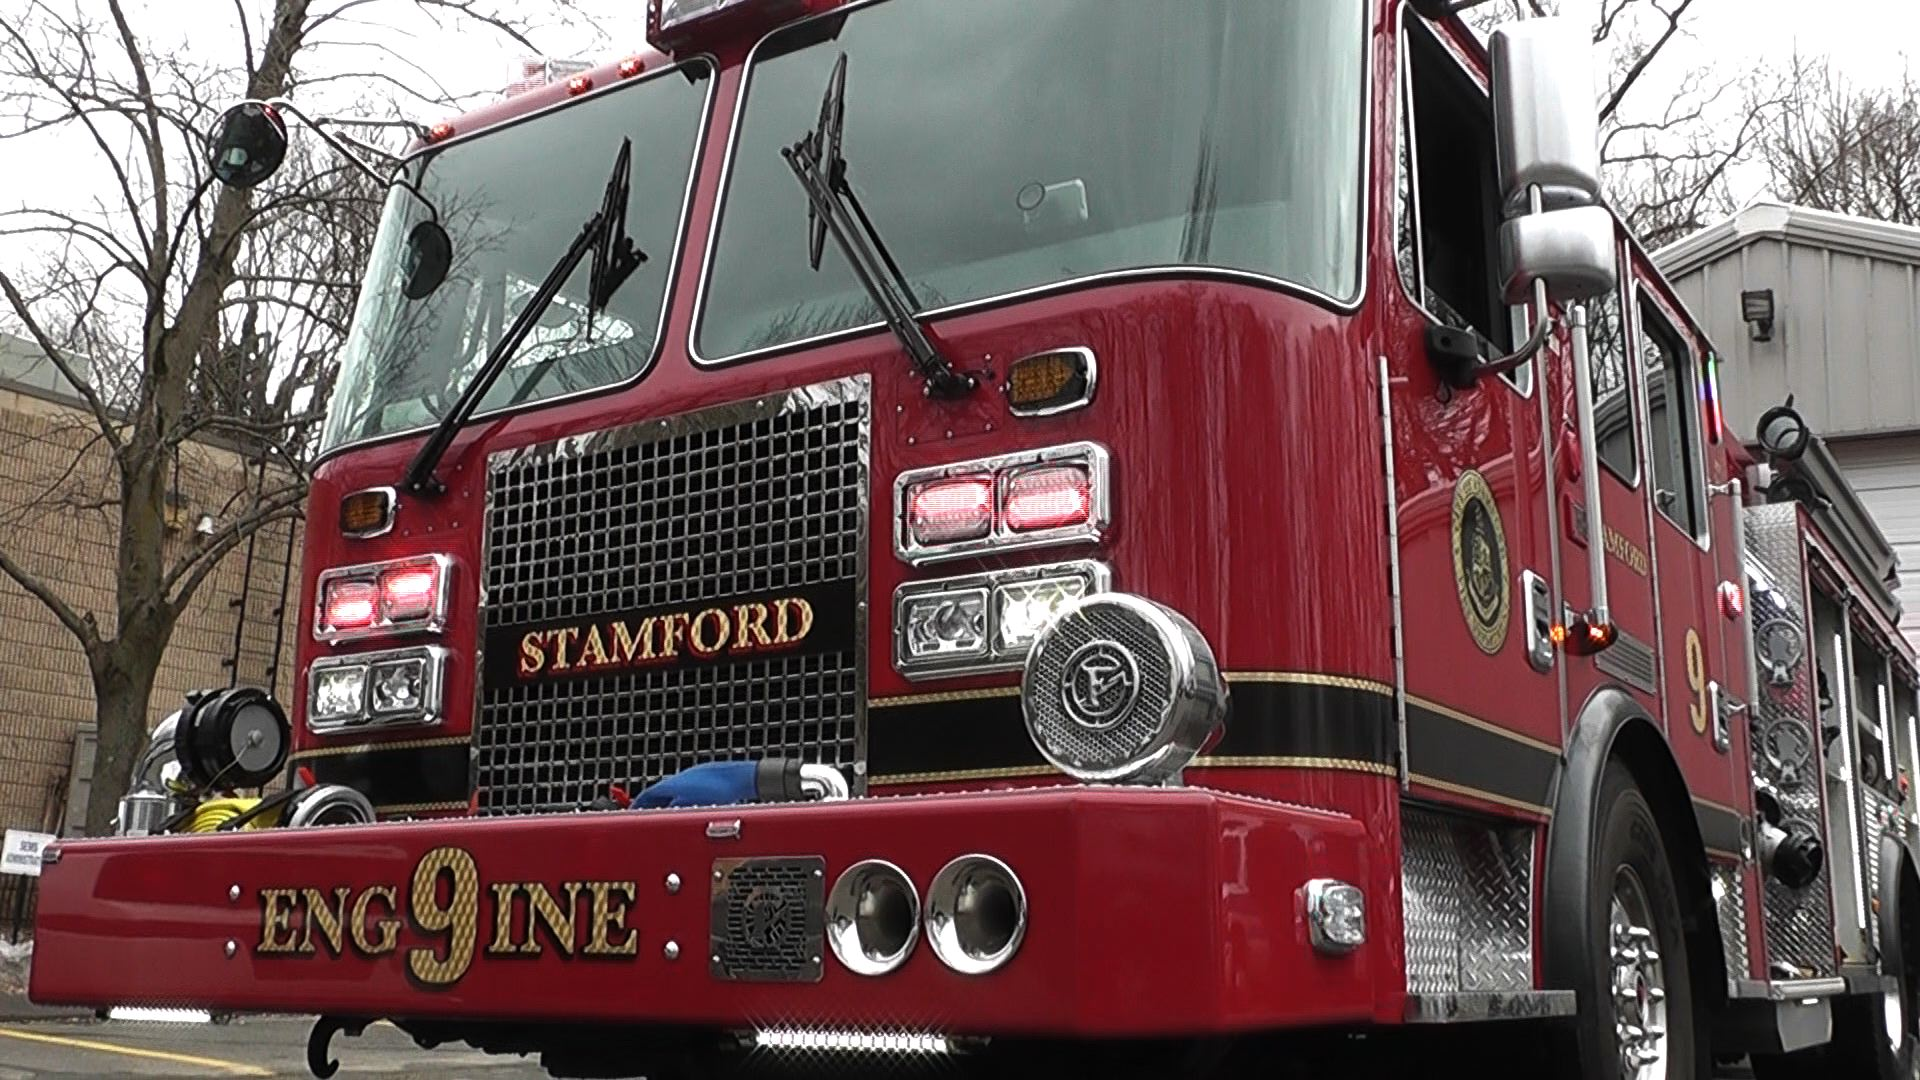 It's Relevant:  Stamford's New Fire Engine